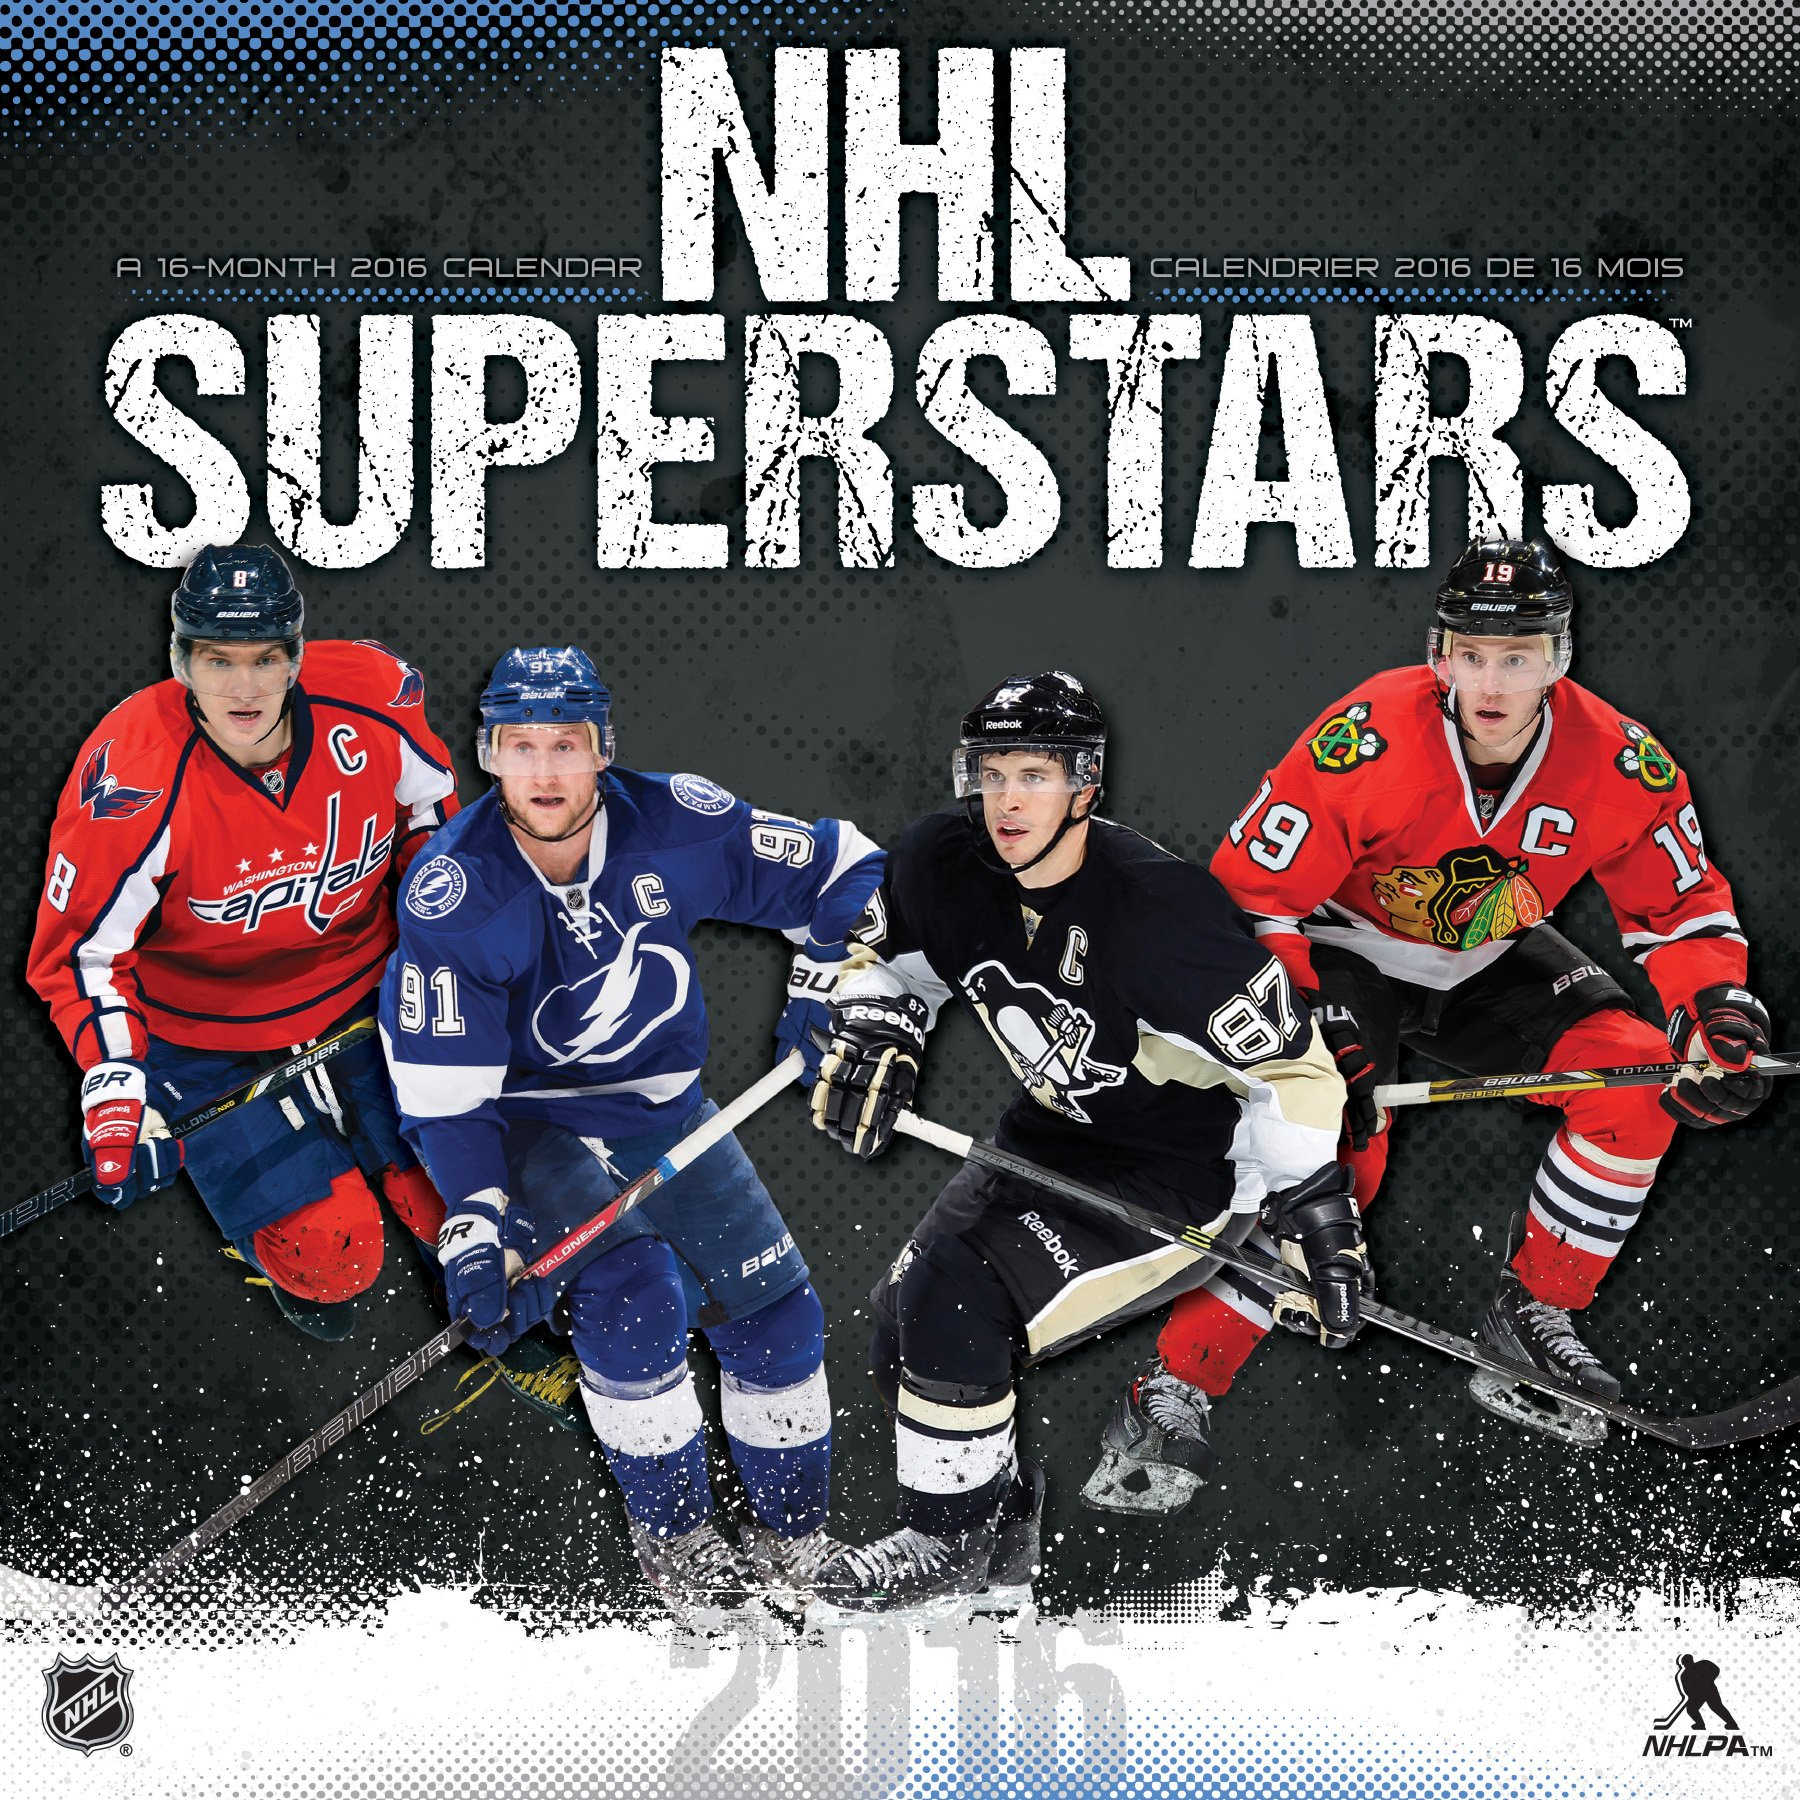 Nhl Superstars 2016 Wall Calendar English And French Edition